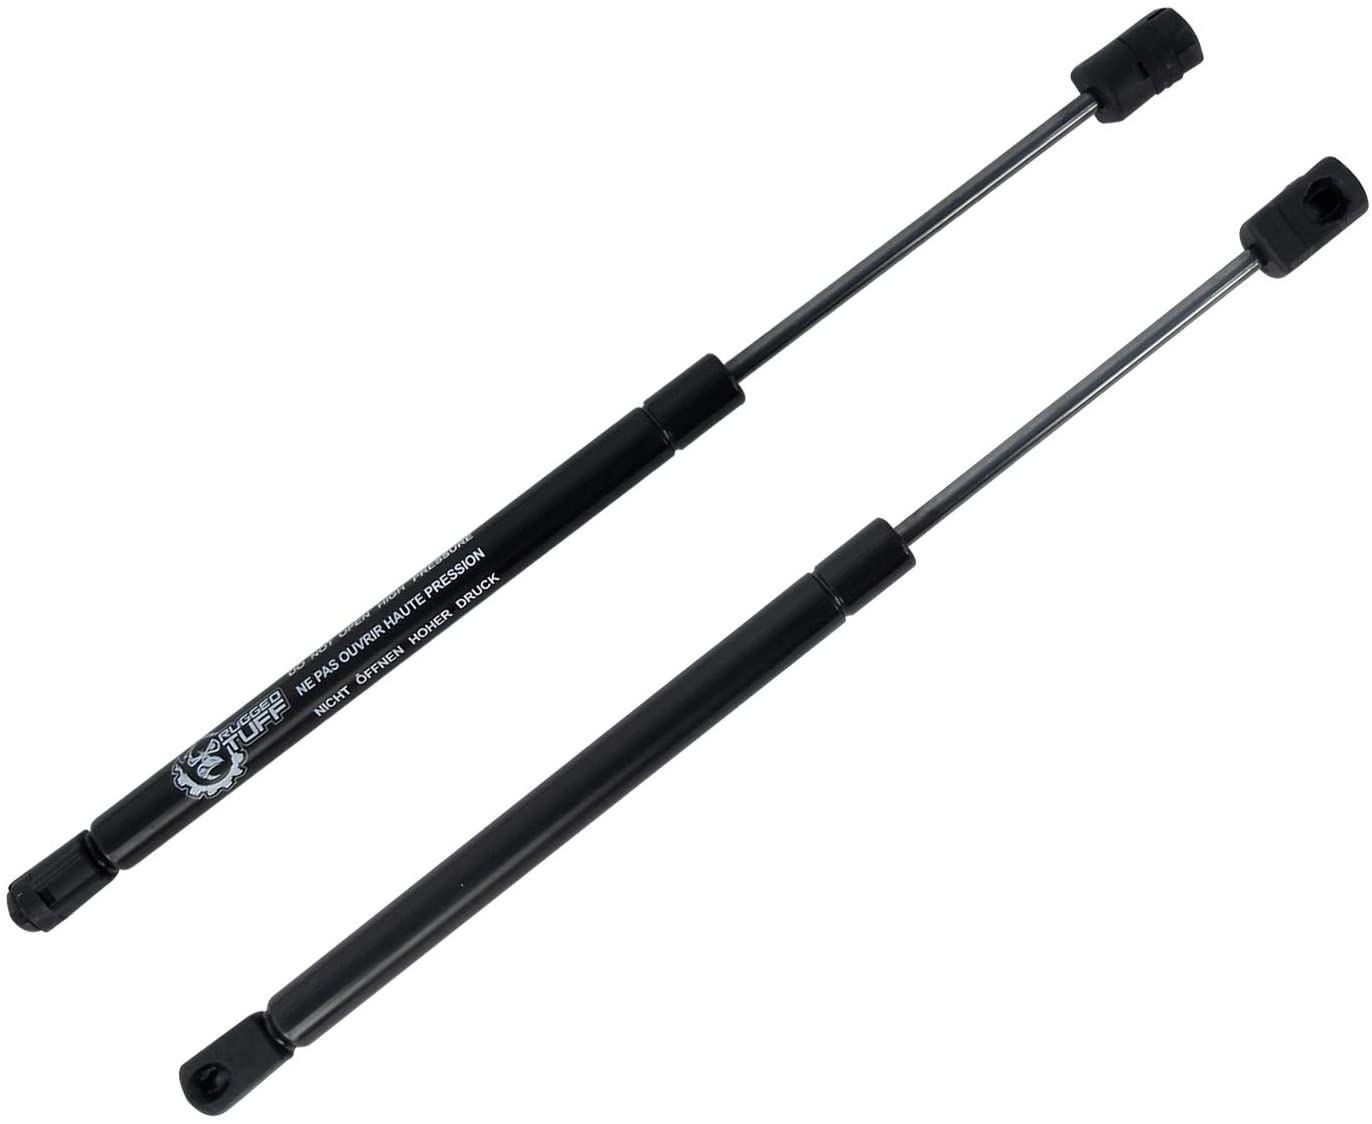 Rugged TUFF Front Hood Shocks Lift Supports Replacement For Ford Expedition F-150 F-250 1997 1998 1999 2000 2001 2002 2003 2004 2005 2006 RT660016 4478 SG404016 Extended Pack of 2